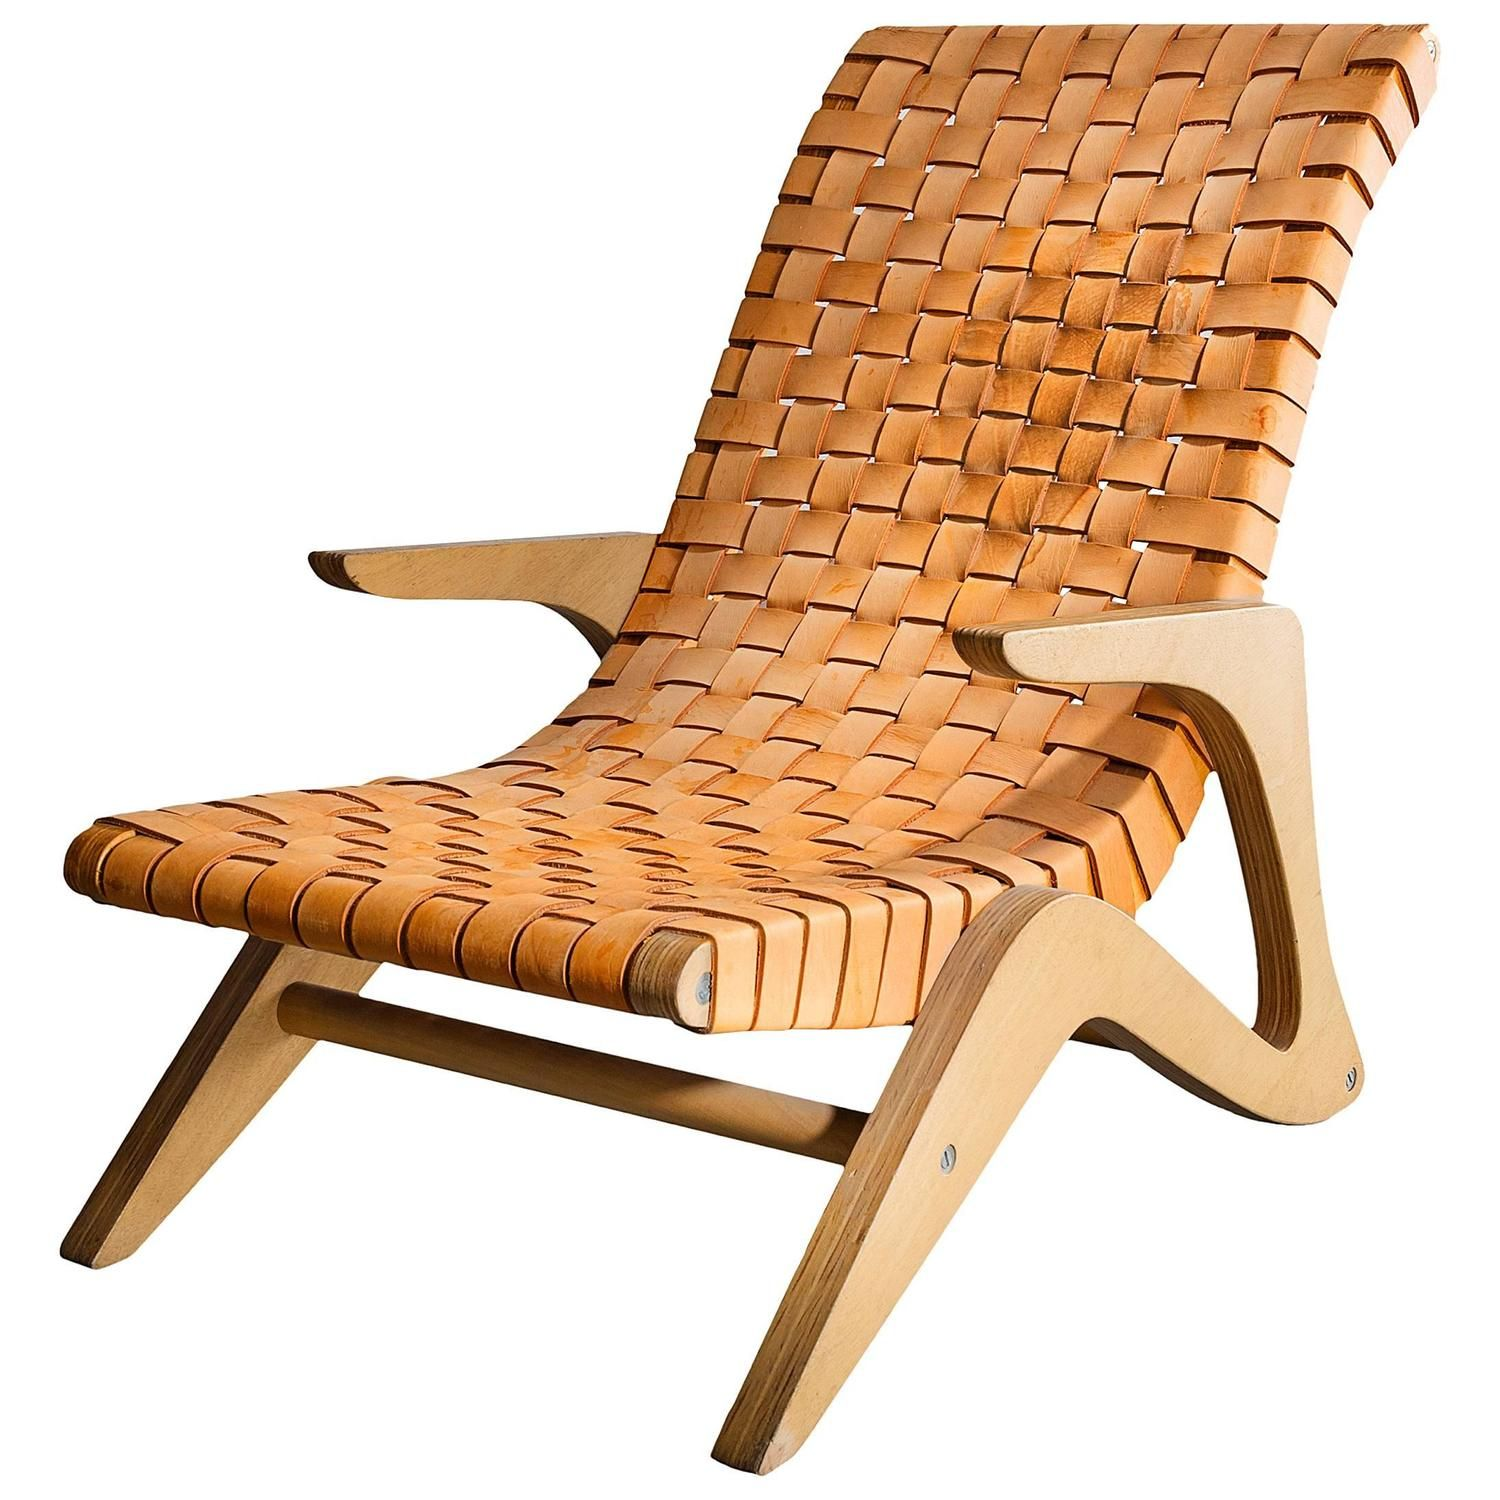 Webbed Chaise Lounge Chairs Ergonomic Chair Justification In Plywood With Leather Seat By Jose Zanine 1950s